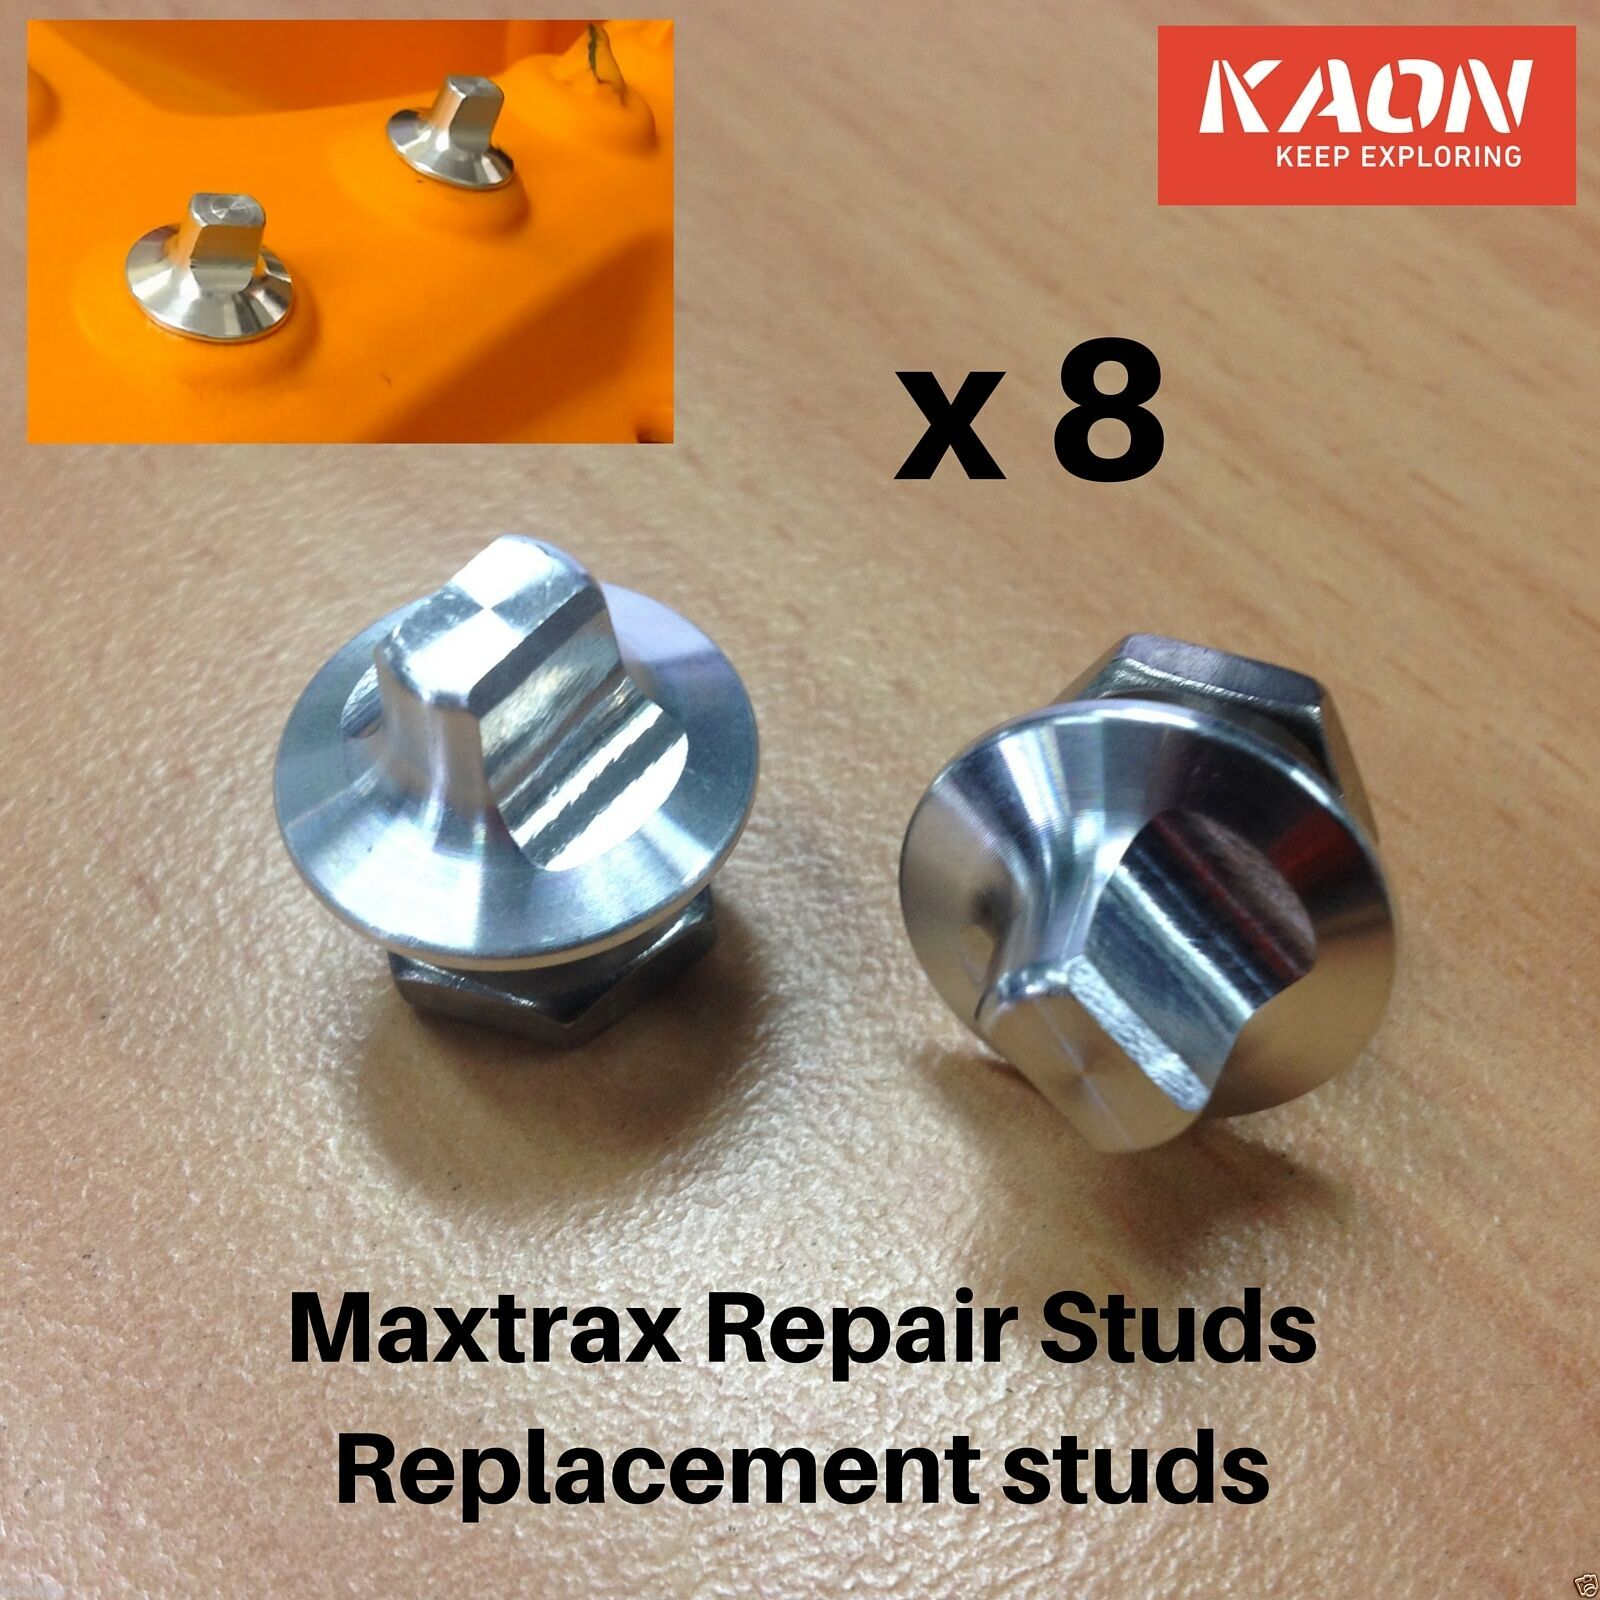 Maxtrax Replacement Teeth Repair Kit - 8 replacement studs; Fix your Maxtrax